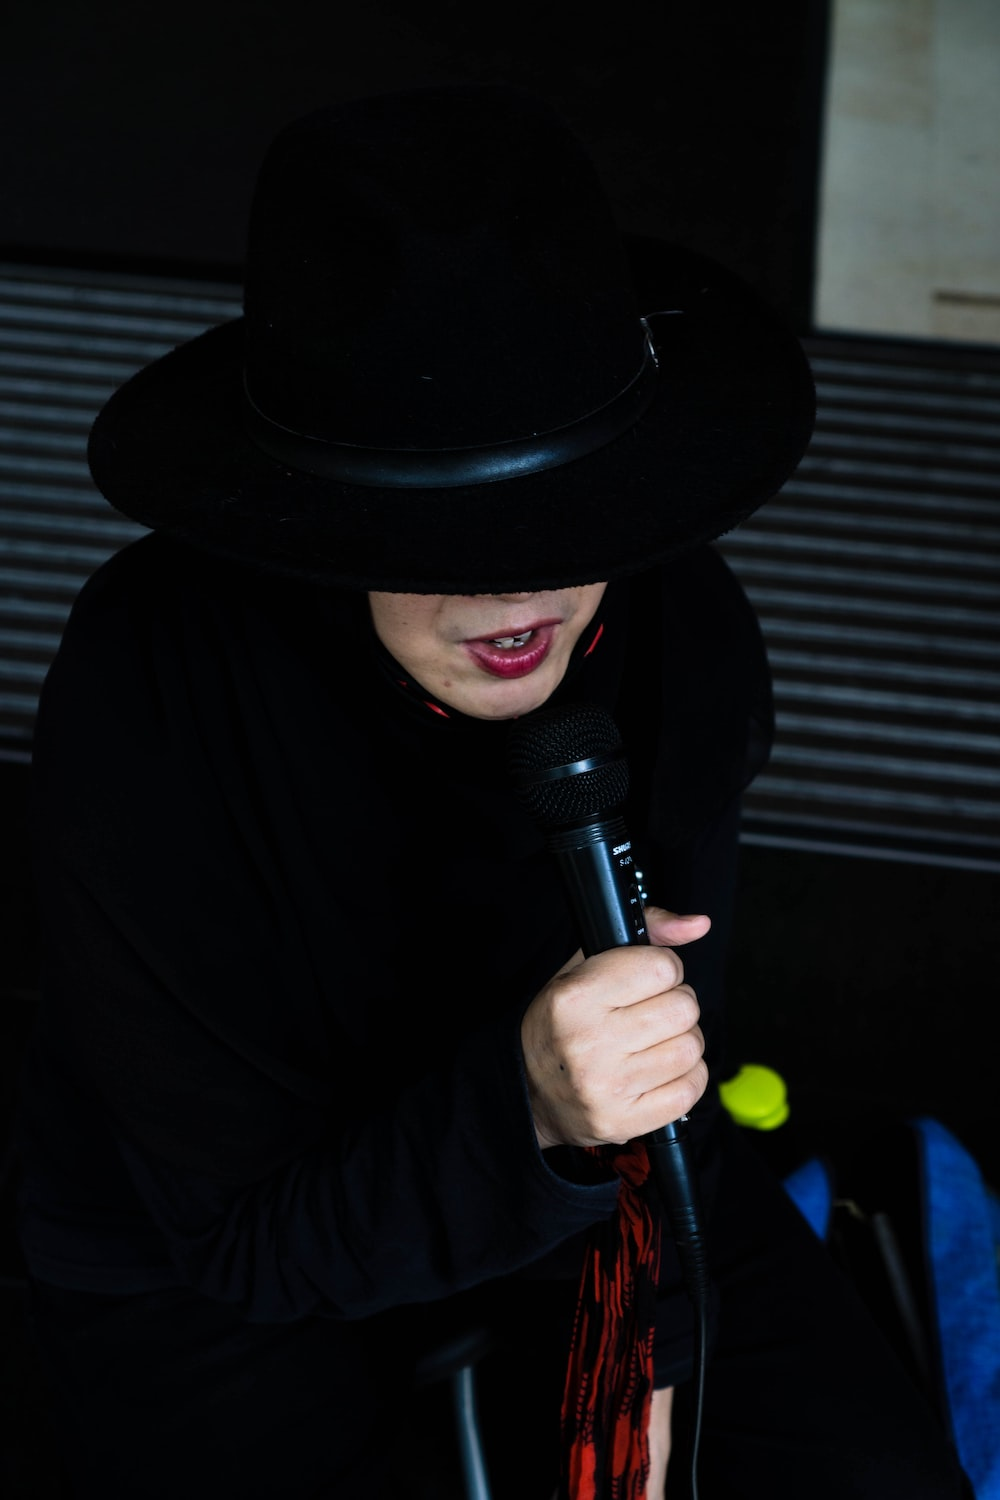 man in black hat holding microphone